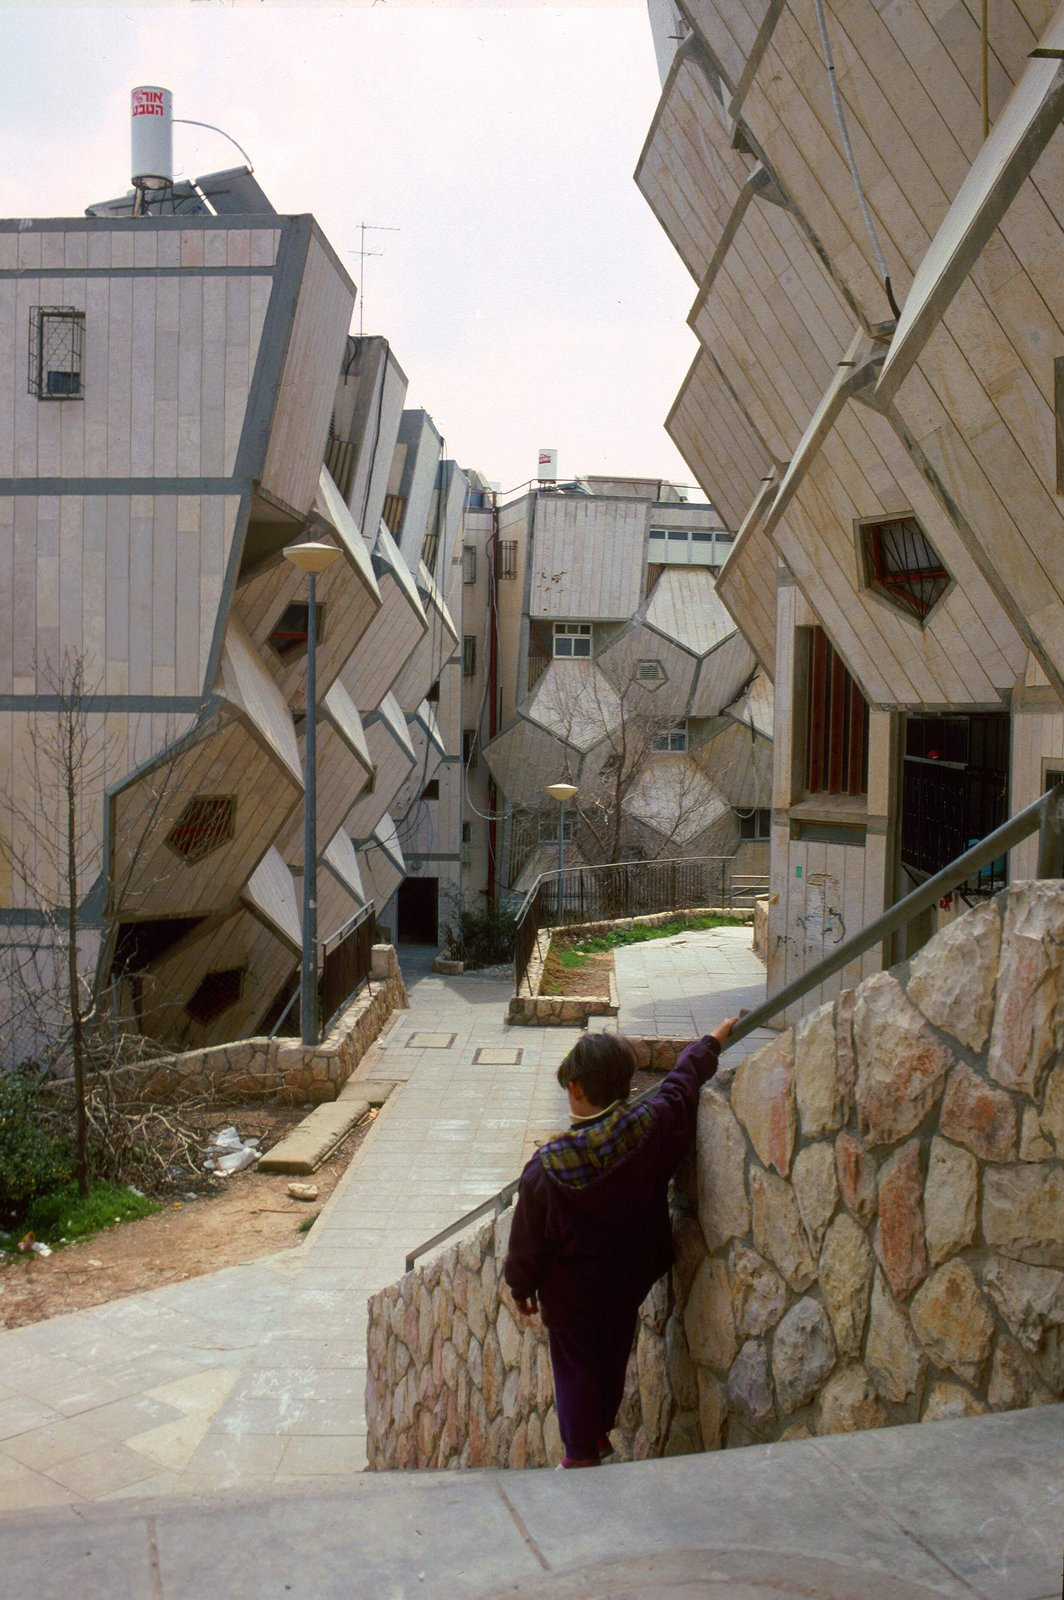 Hecker argues that the use of dodecahedrons and the pentagon-shaped walls helps to enclose a relatively large volume with less surface area than a rectangular prisim. Photo by Zvi Hecker.